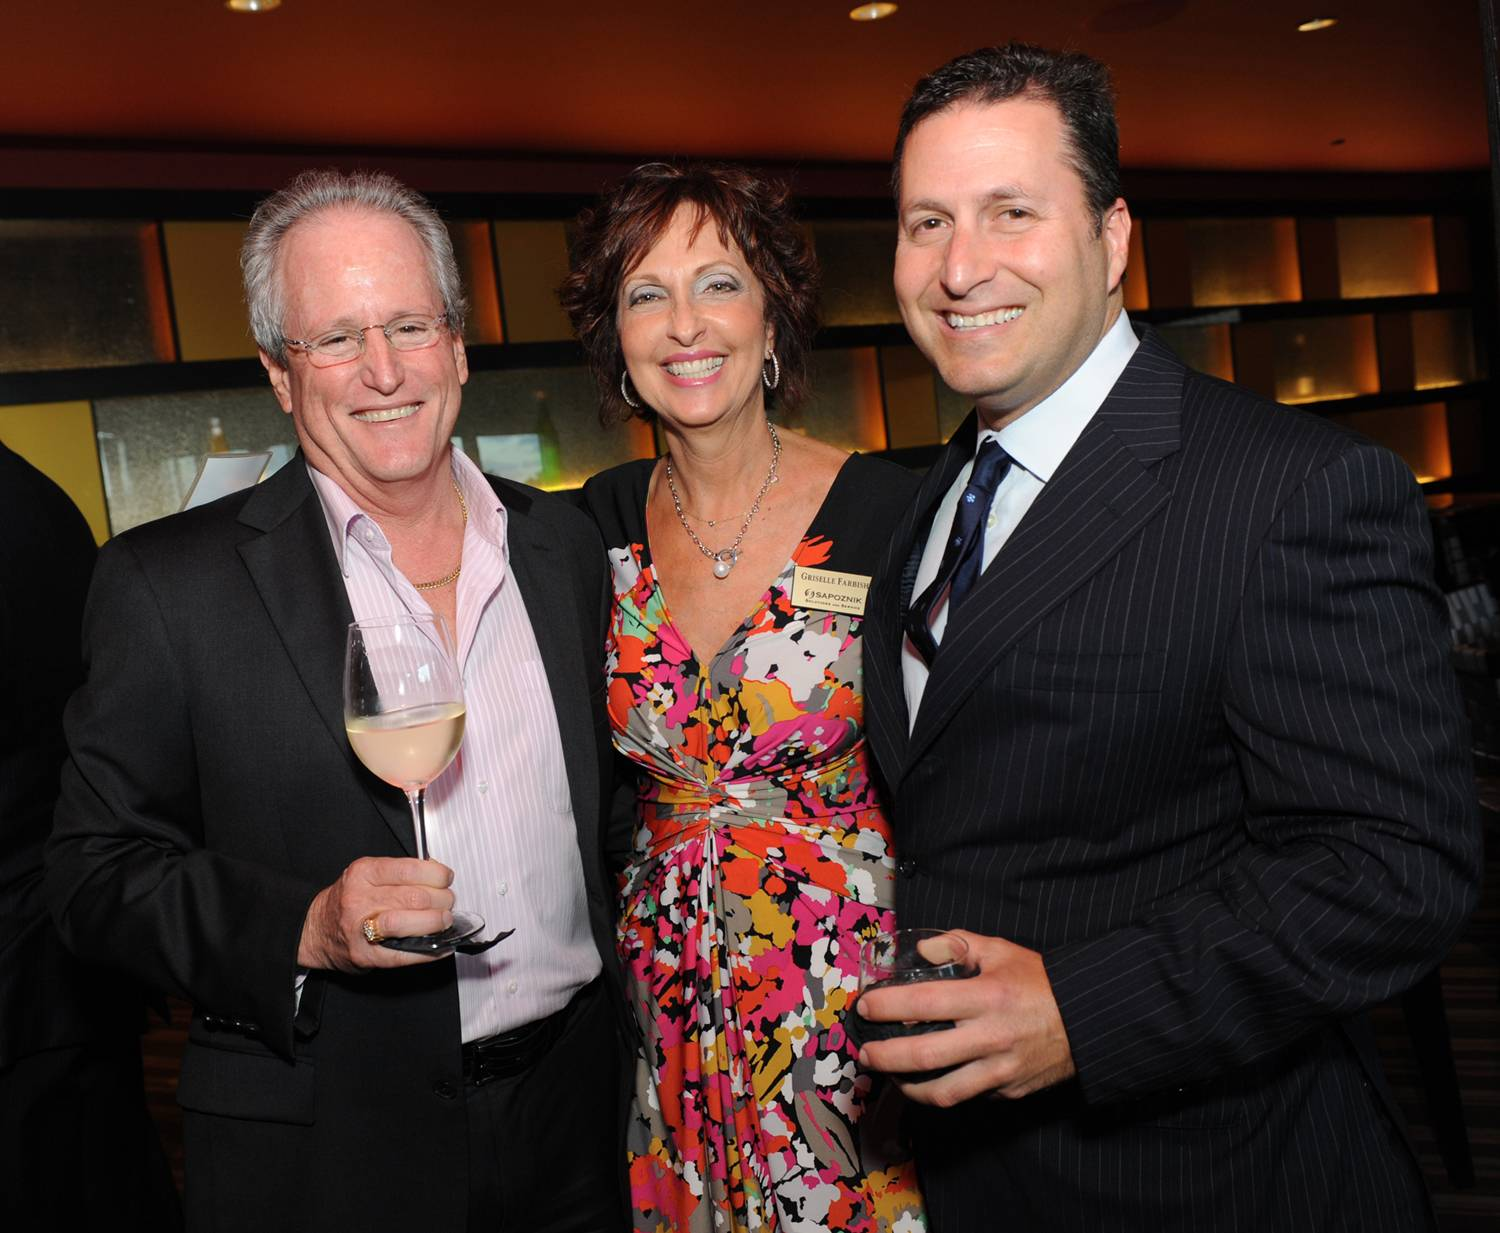 P3 - Gary and Griselle Farbish with Mark Schwartz, CEO of Corporate  Insurance Advisors (CIA)